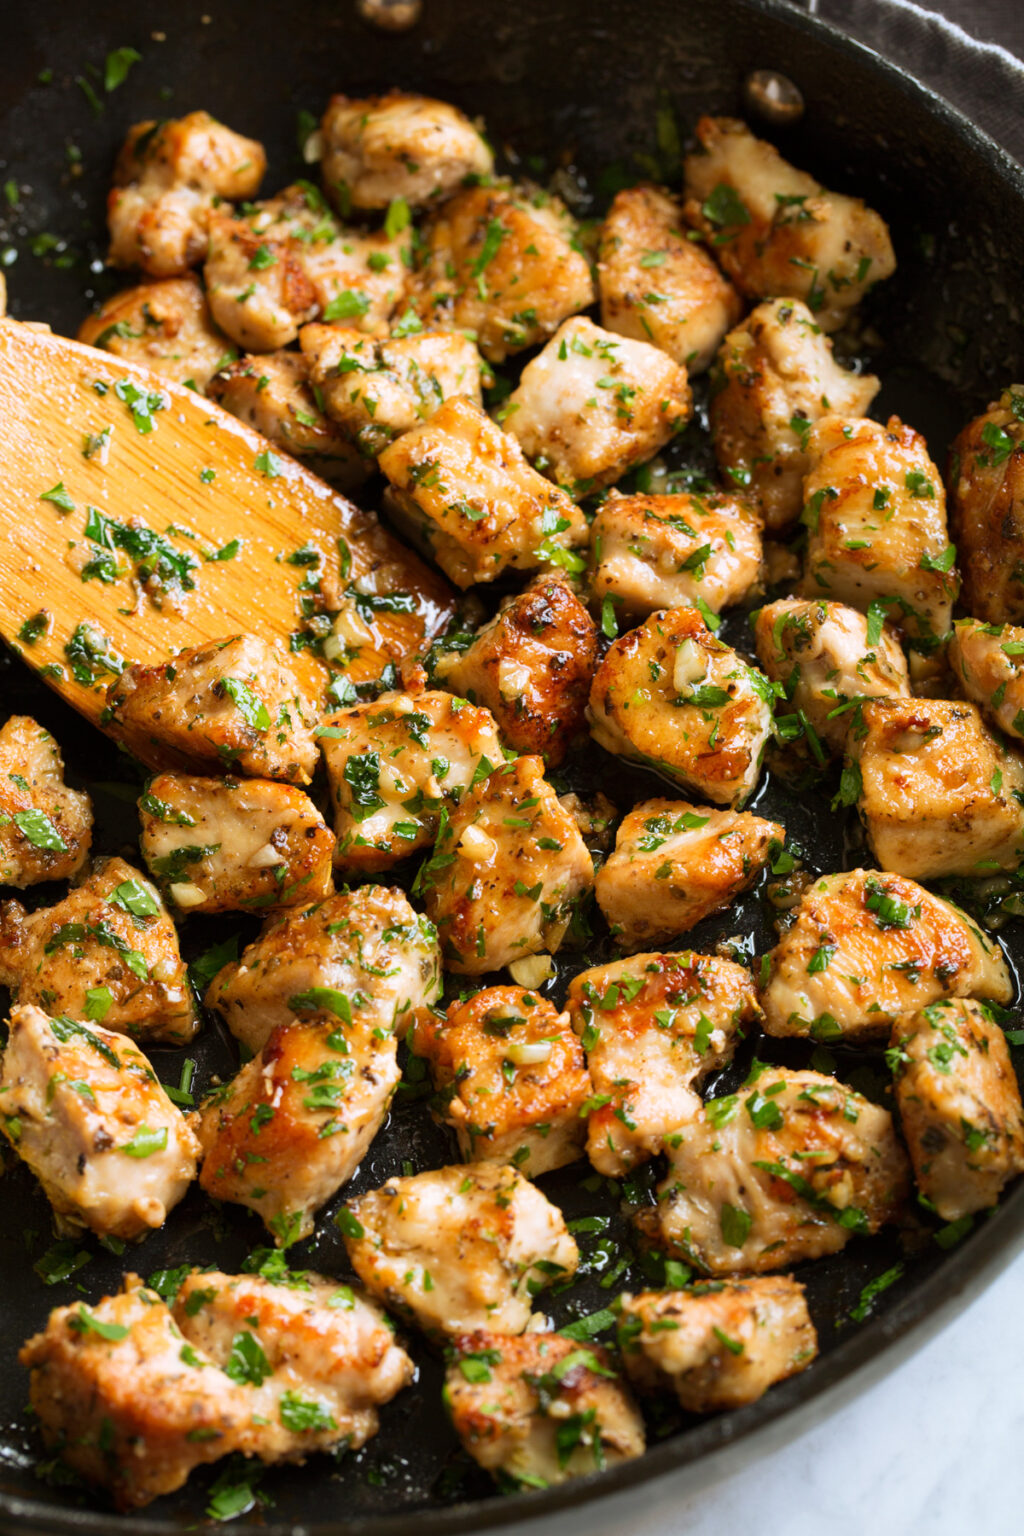 Keto Low-carb Garlic Butter Chicken Bites